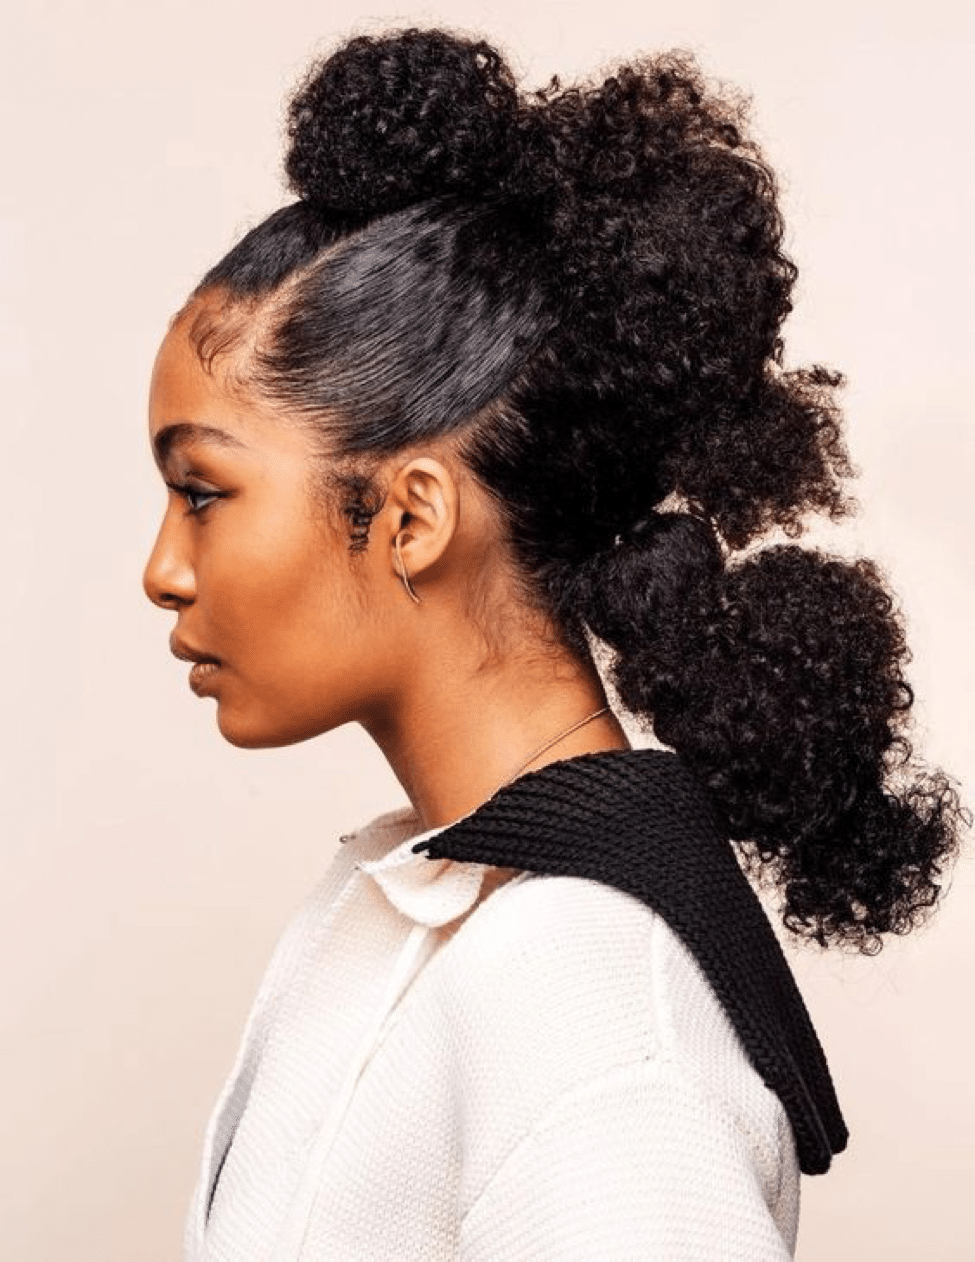 25 Ponytail Hairstyles for Black Female Hair 2021